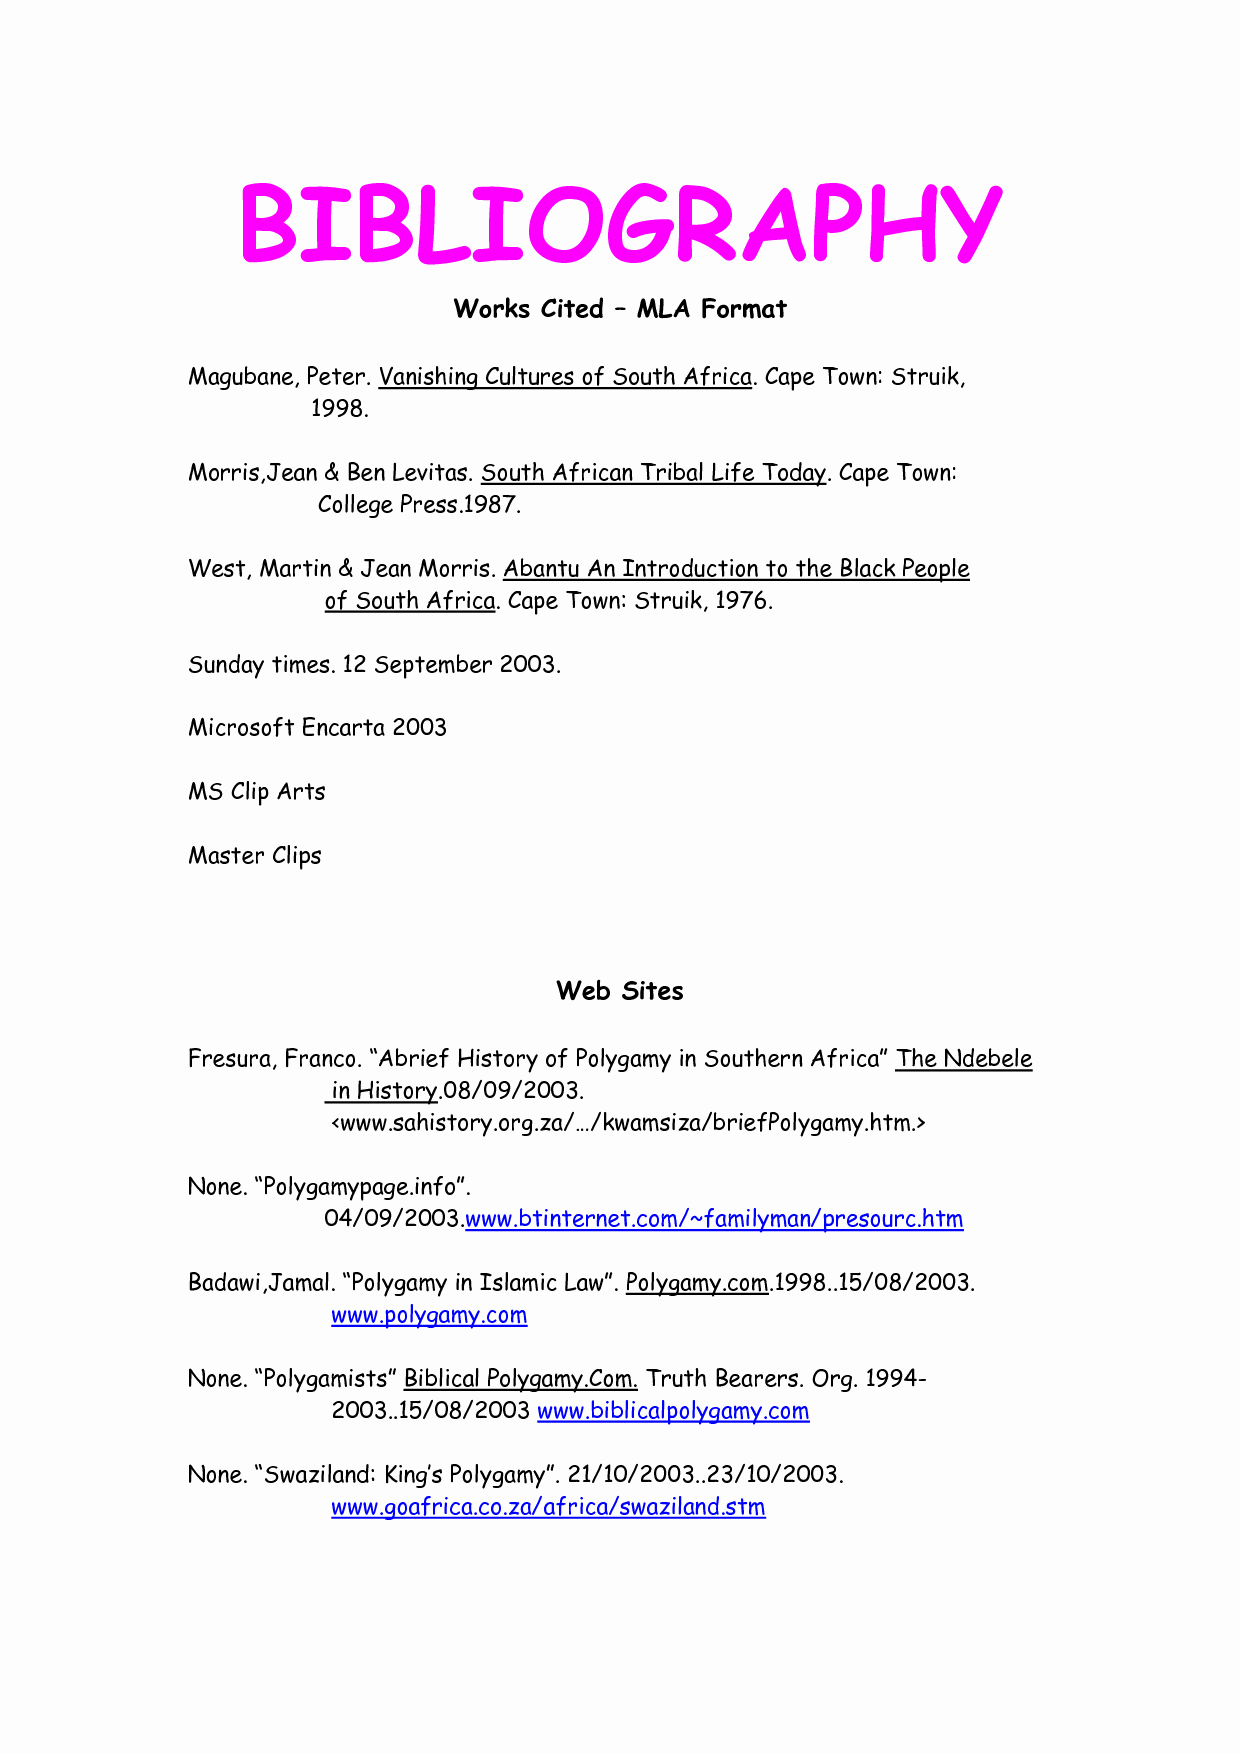 Mla Works Cited Page Template Elegant Mla format Works Cited Template for My Class